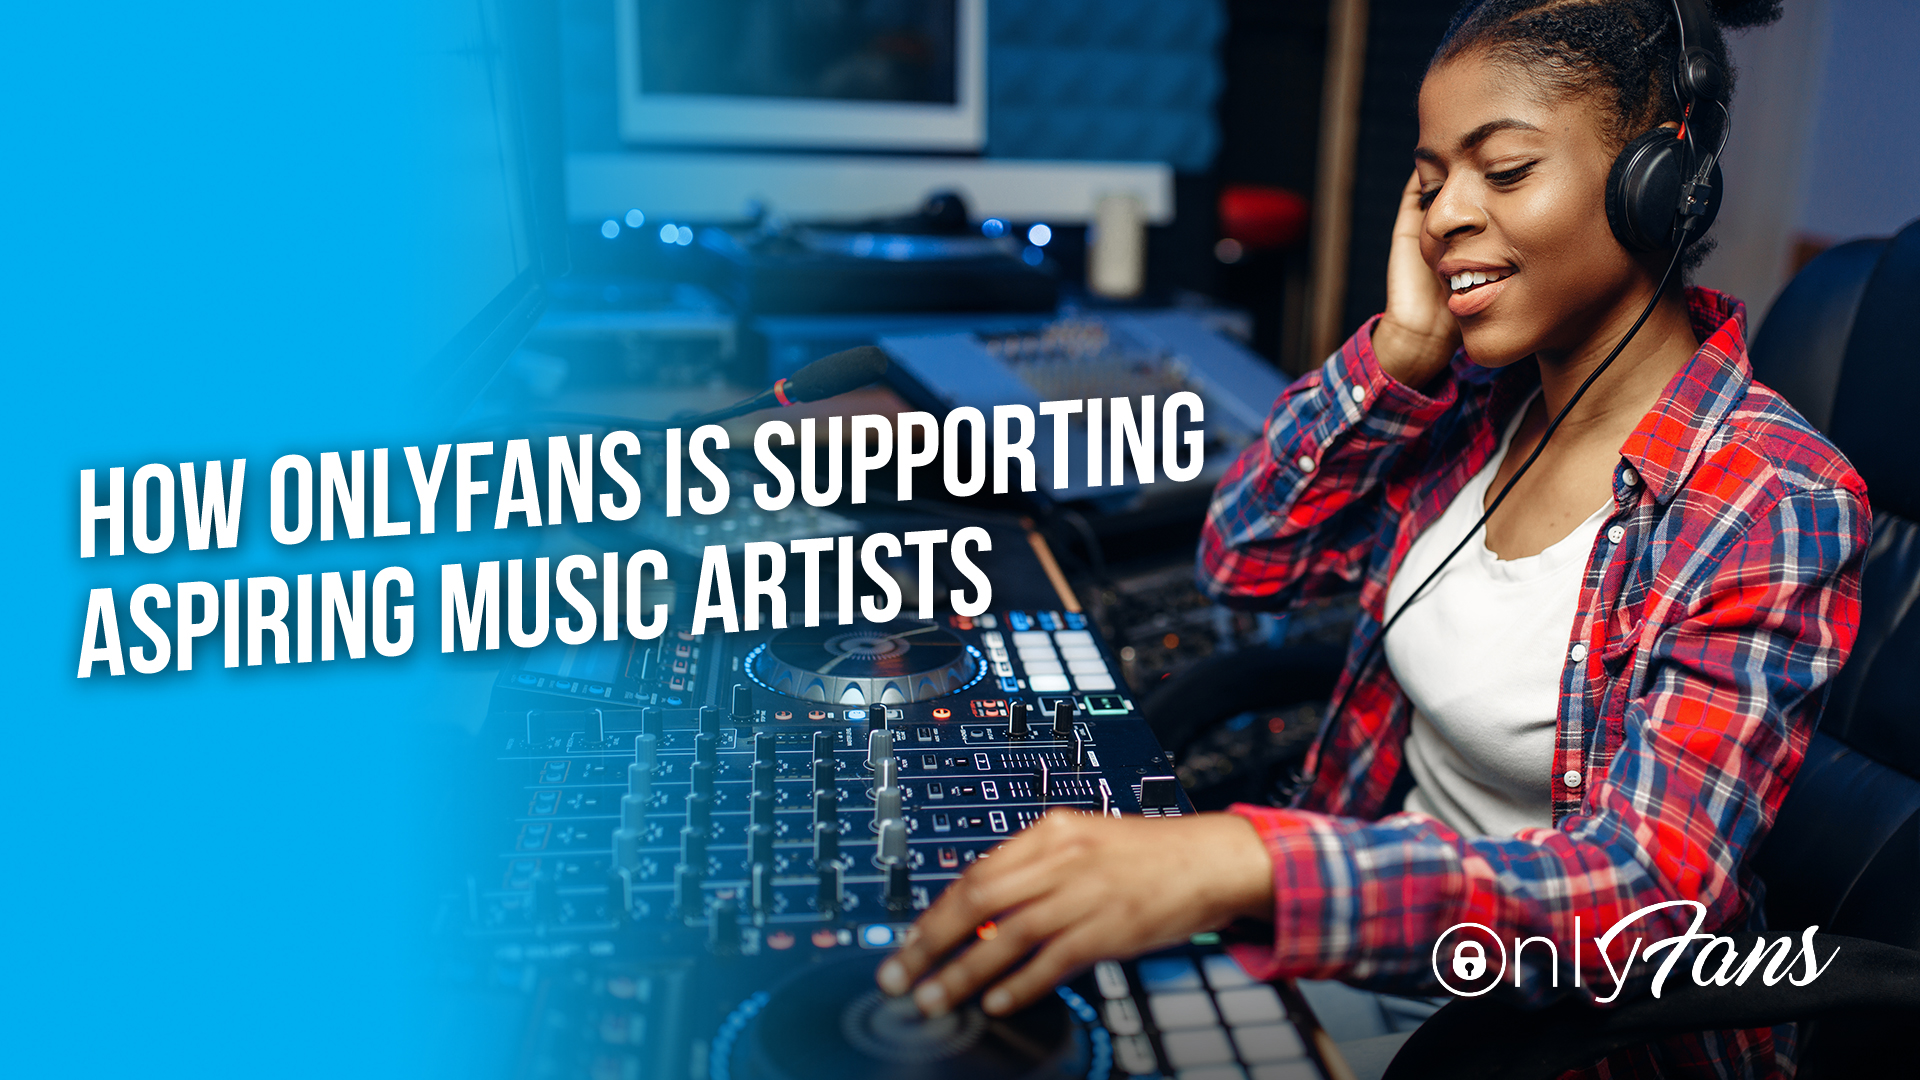 How OnlyFans is Supporting Aspiring Music Artists